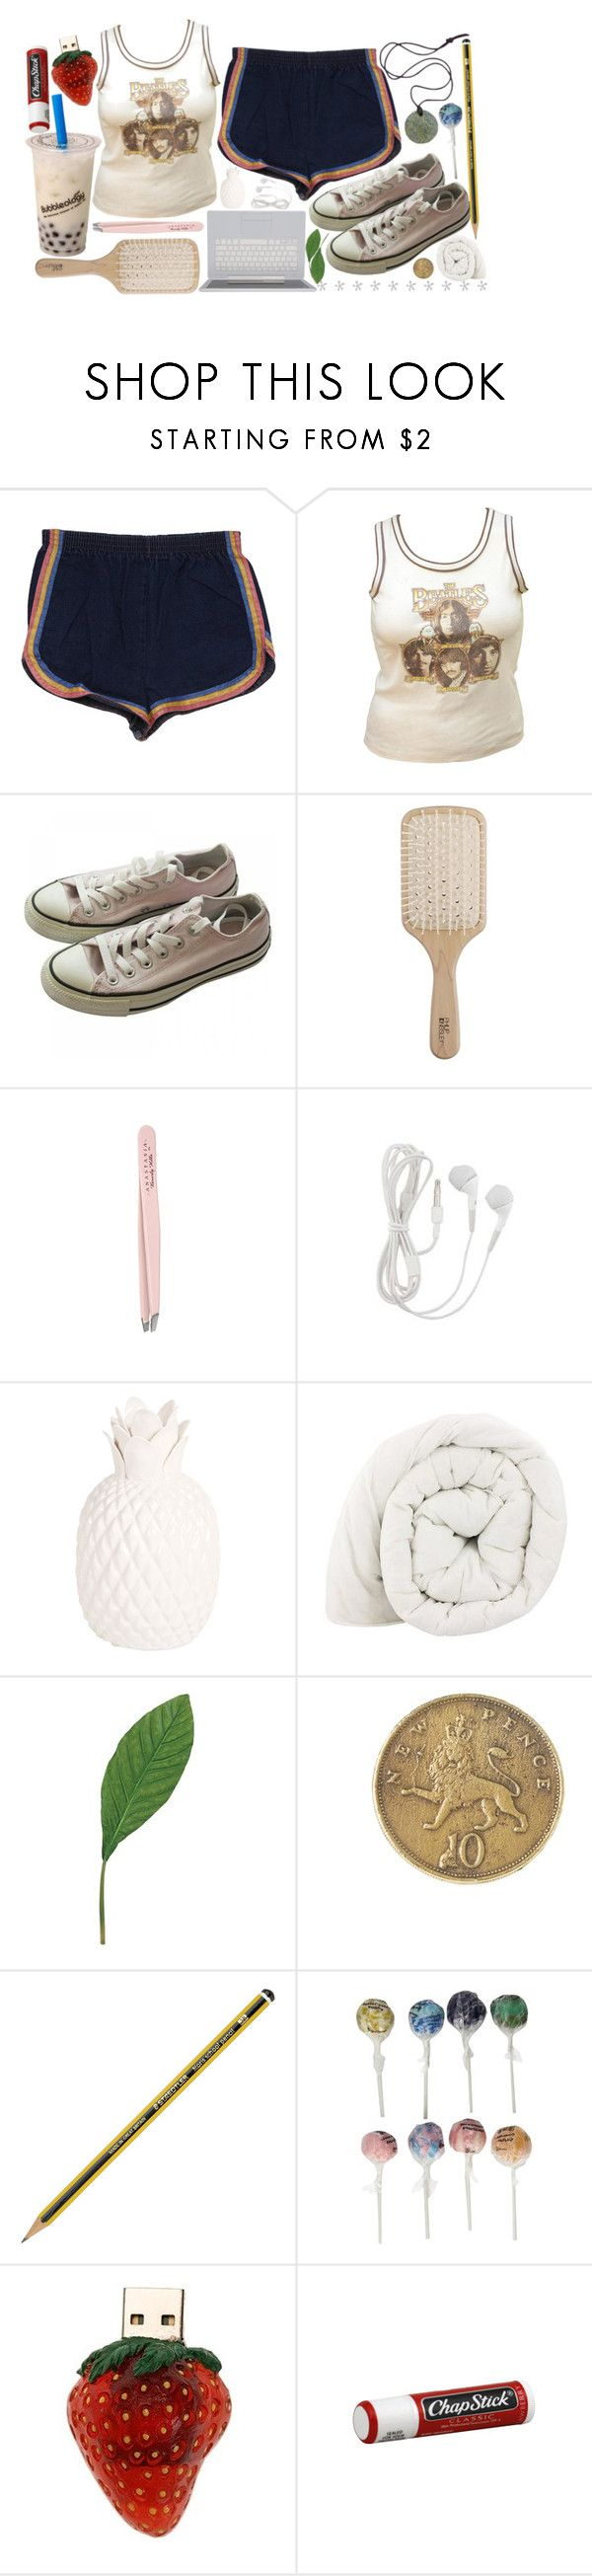 """Untitled #1475"" by soft-dreamy-girl ❤ liked on Polyvore featuring Well Worn, Converse, Philip Kingsley, Anastasia, Zara Home, Laura Cole, Alkemie, Original Gourmet Food Company and Chapstick"